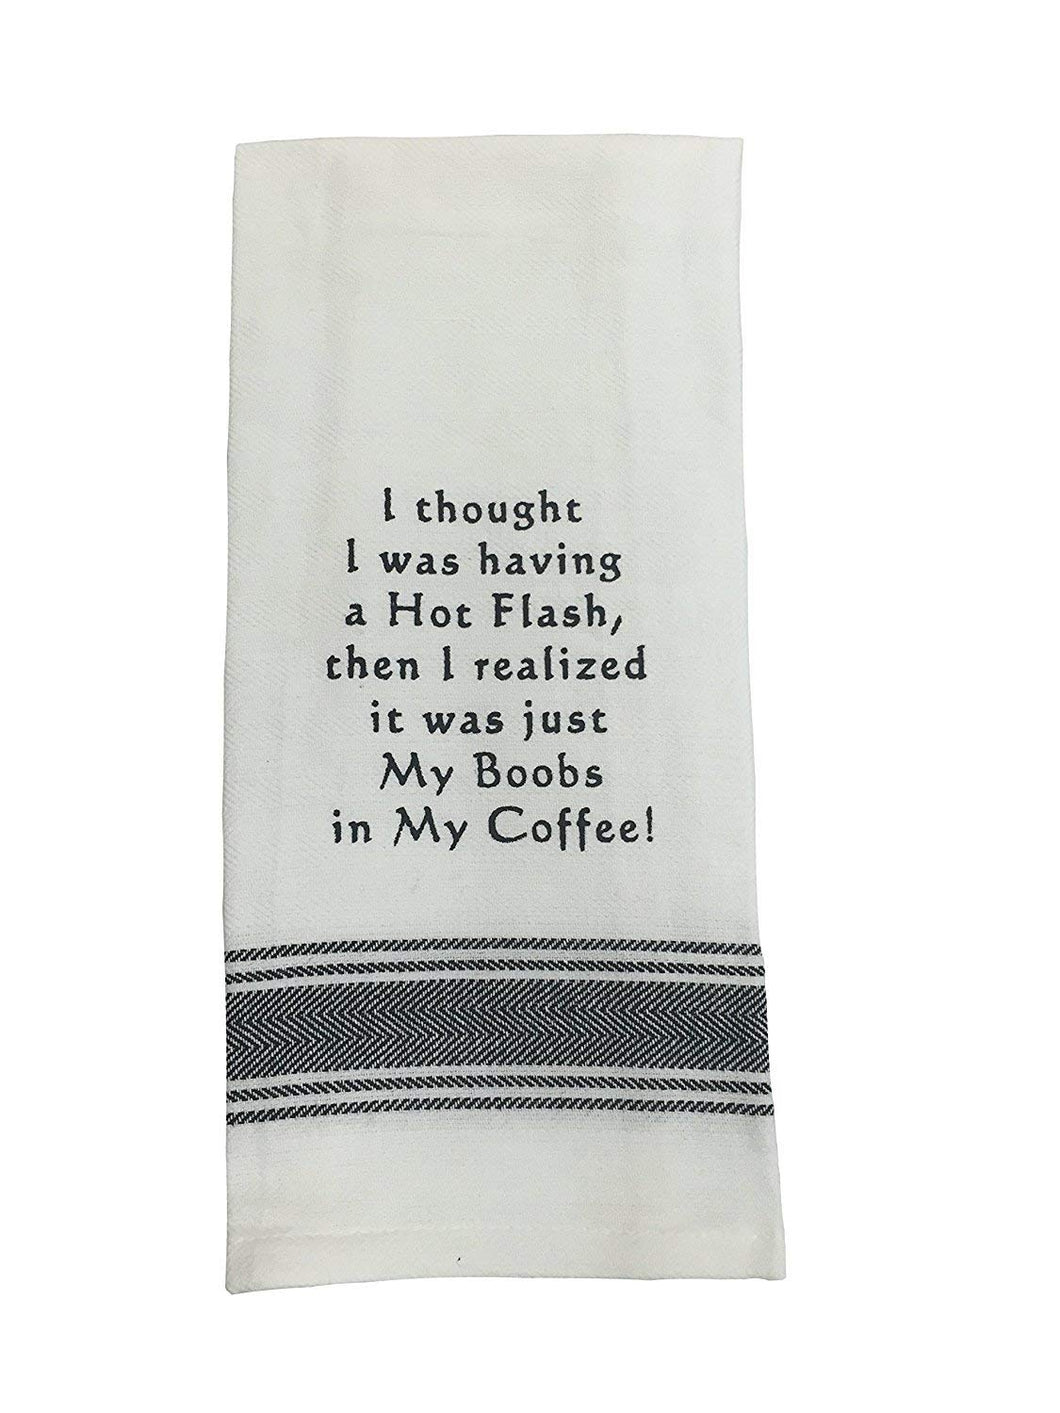 TOWEL: I Thought I Was Having A Hot Flash, Then I Realized It Was Just My Boobs In My Coffee!